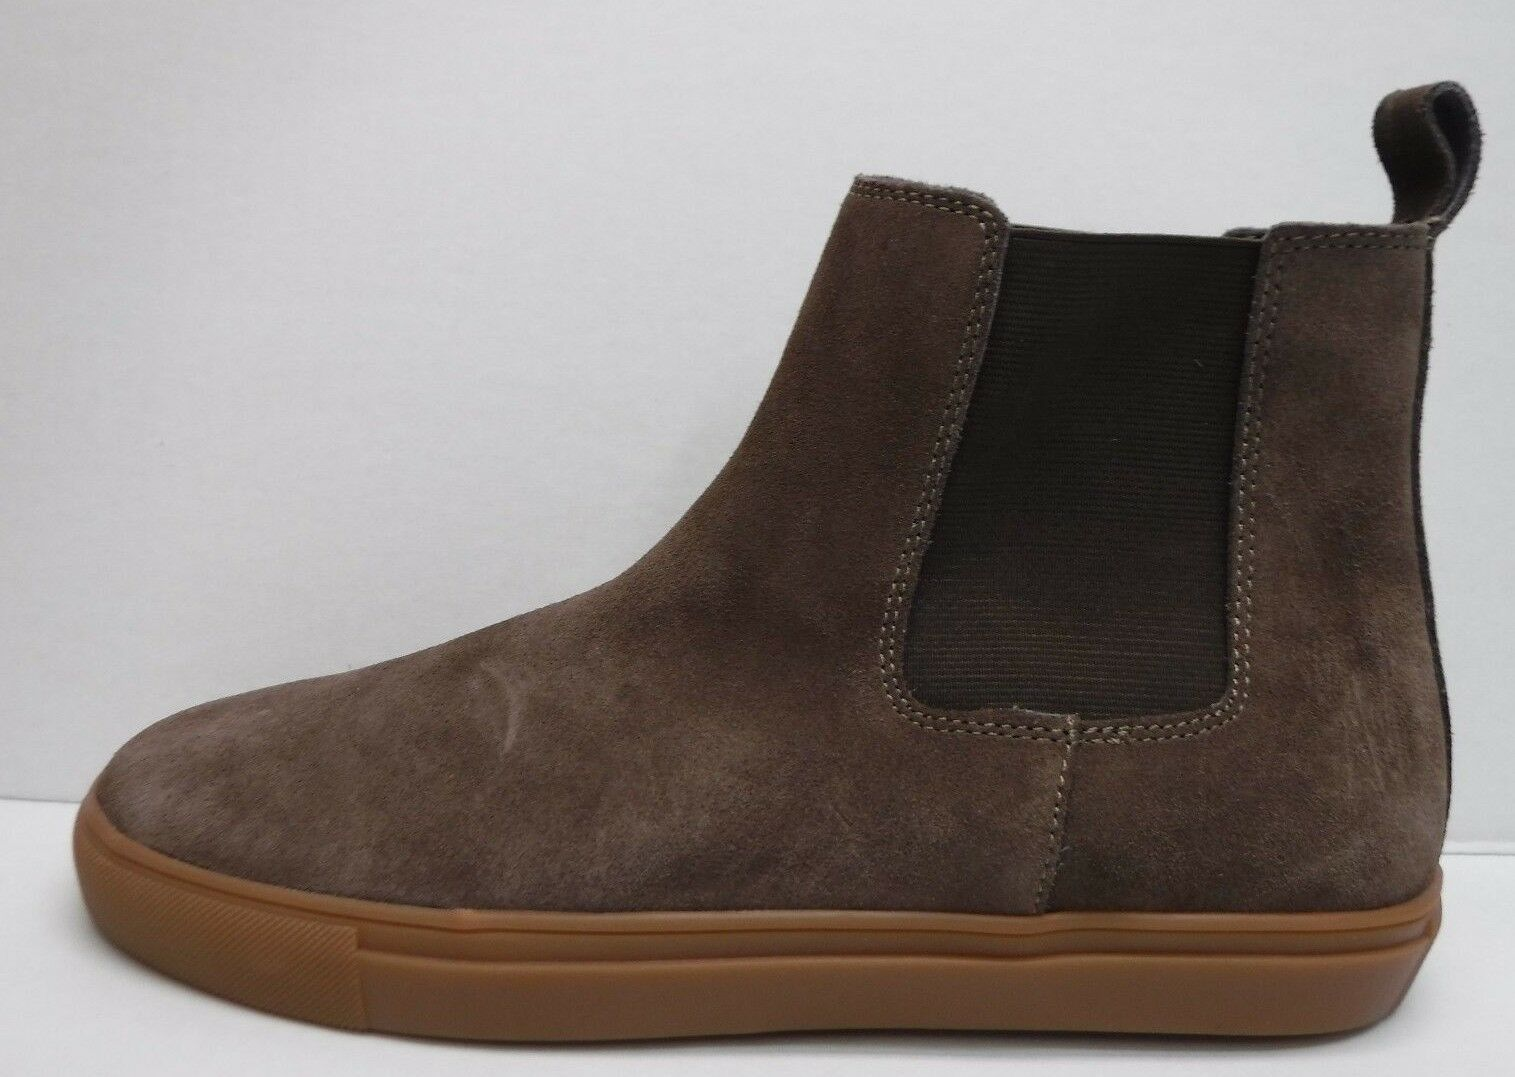 Steve Madden Size 11 Brown Suede Chukka Boots New Mens shoes